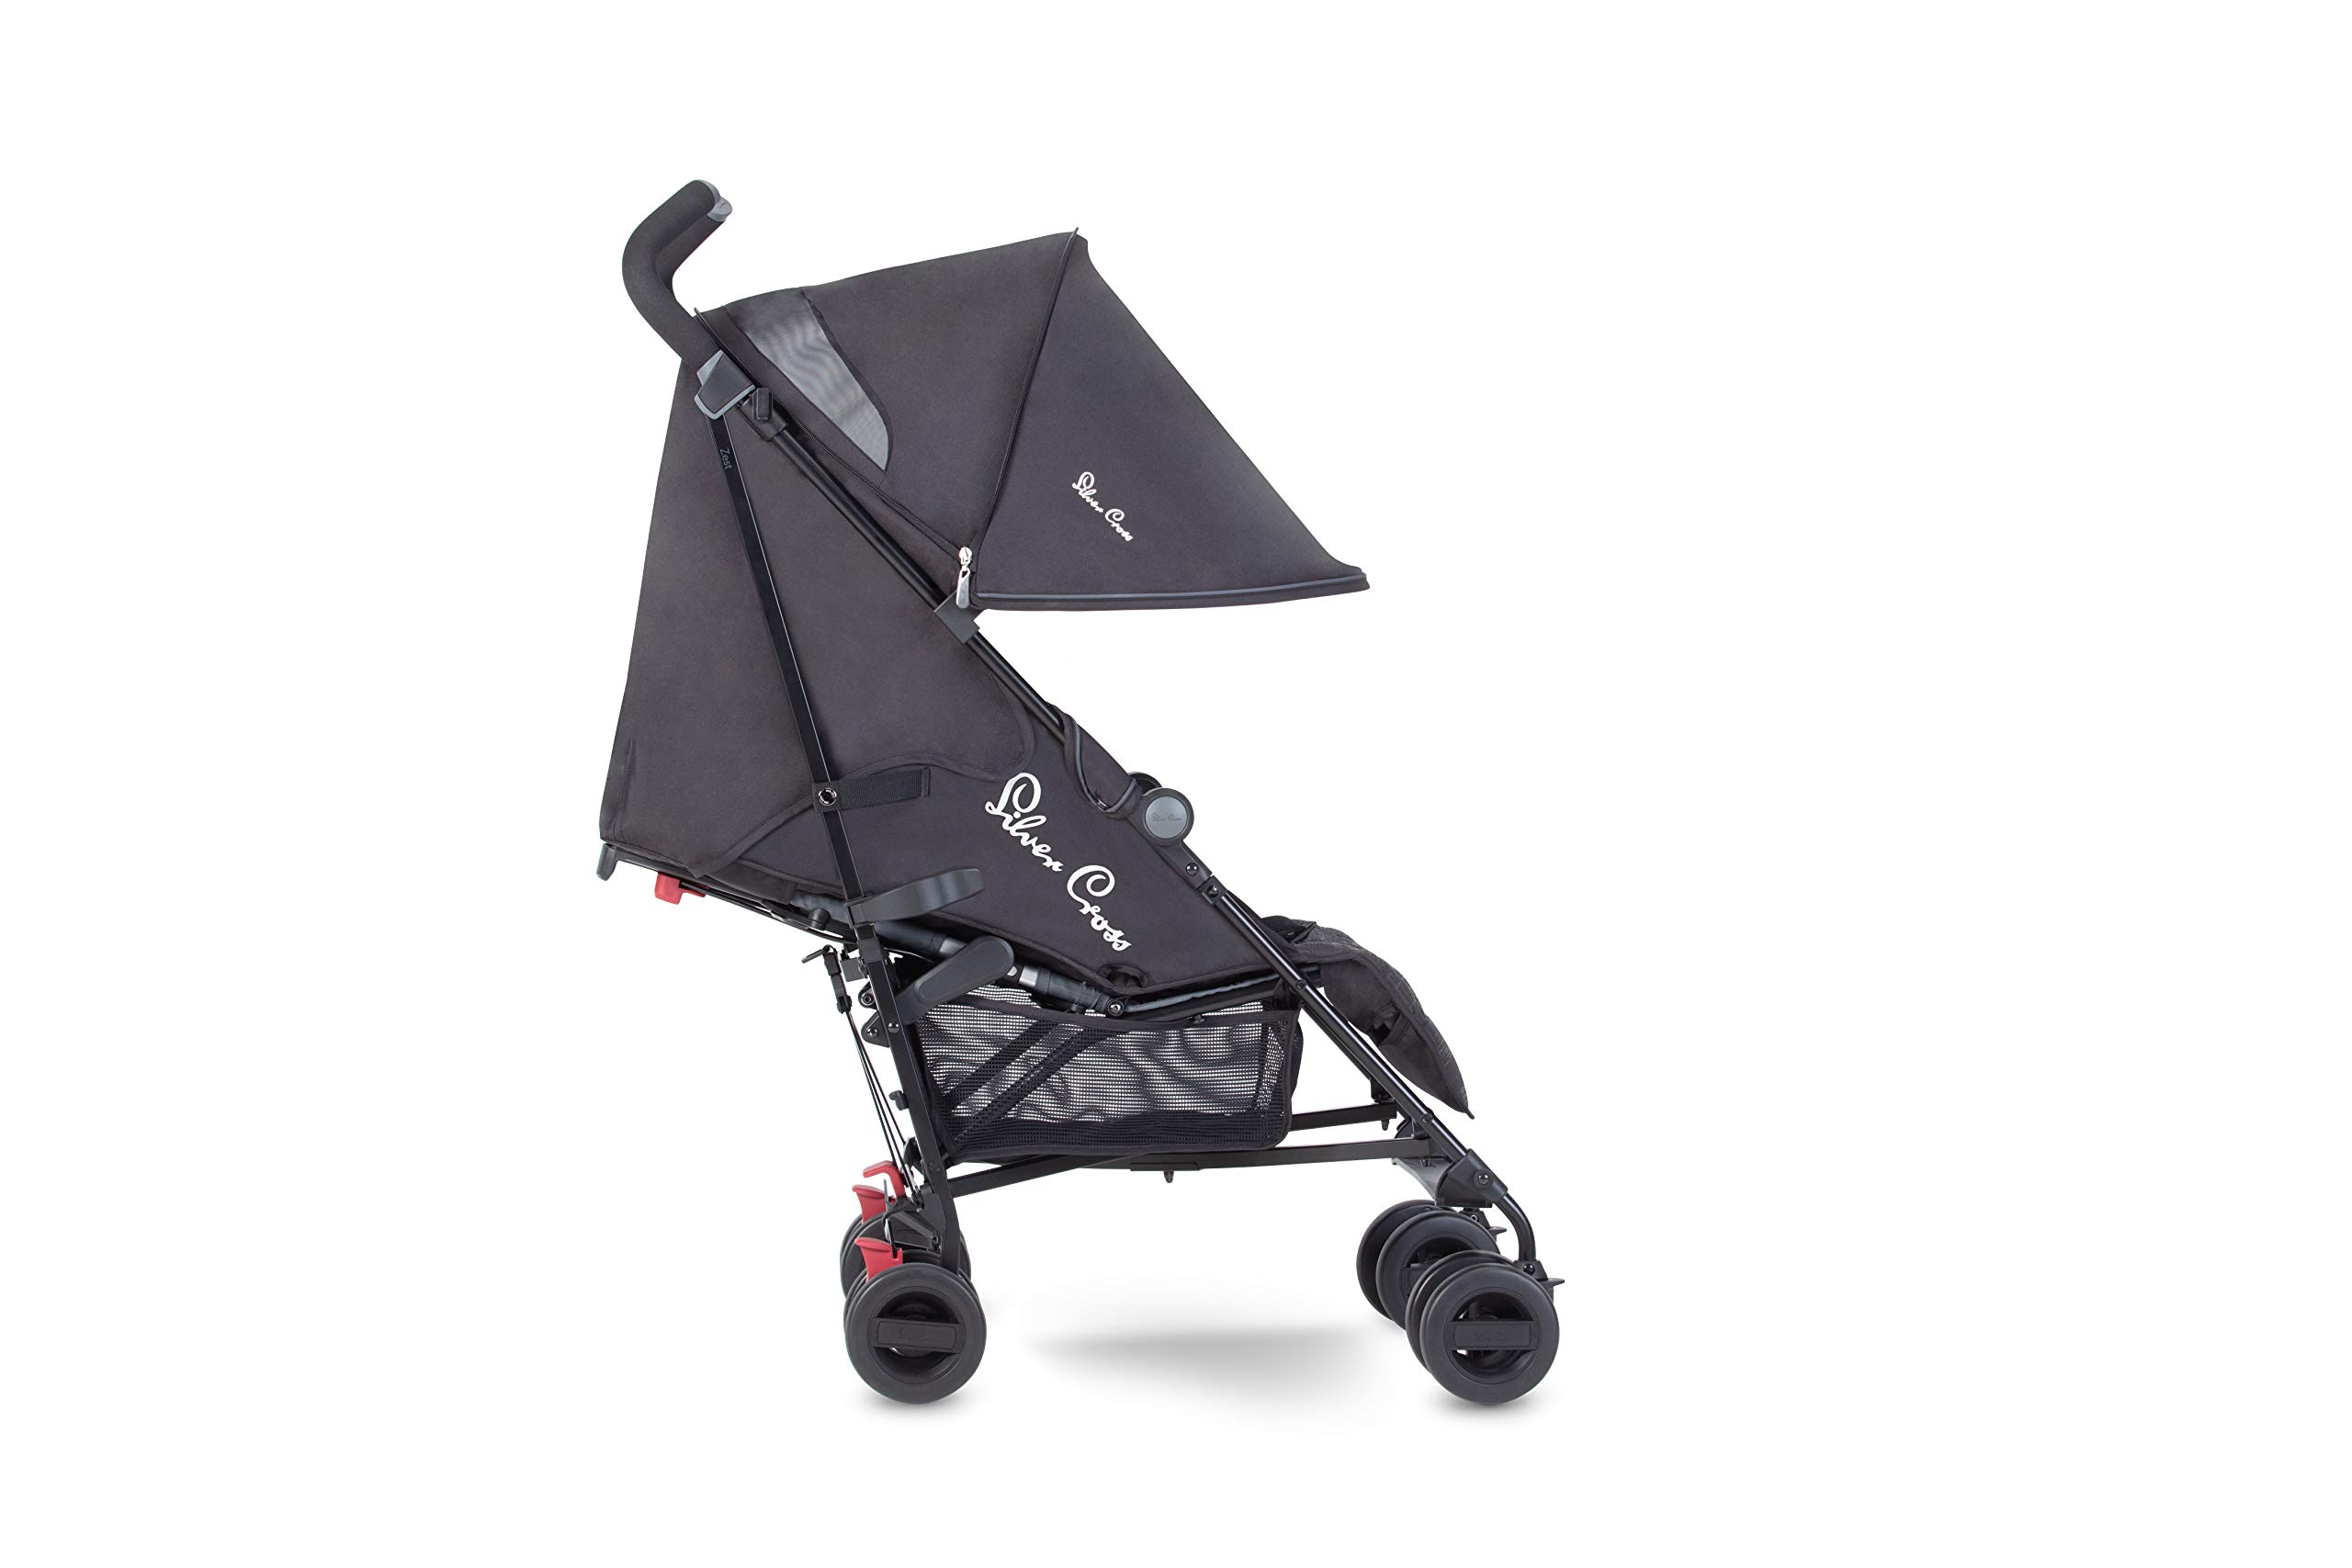 Silver Cross Zest Charcoal Black Silver Cross Ultra lightweight zest pushchair, weighing in at only 5.8kg, is suitable from birth up to 25kg It has a convenient one-hand fold, while the compact design makes it easy to store The fully lie-flat recline is best in its class 1